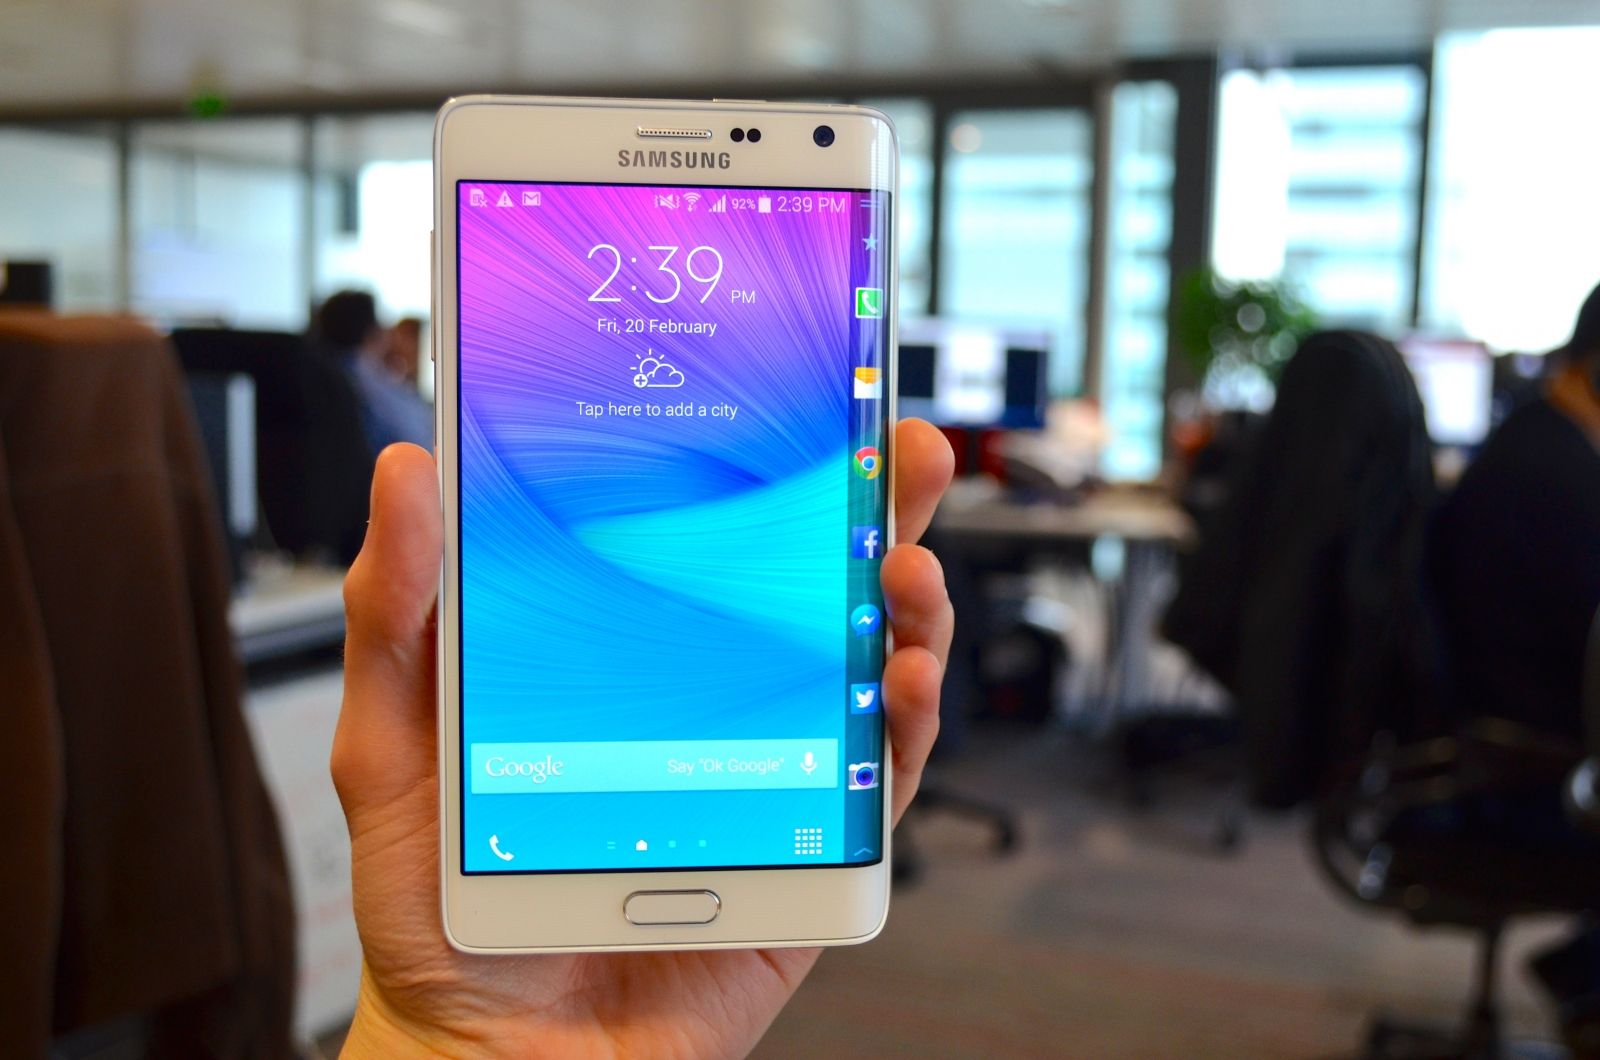 Android Lollipop OS update active for Samsung Galaxy Note 4 and Galaxy Note Edge users on US Cellular